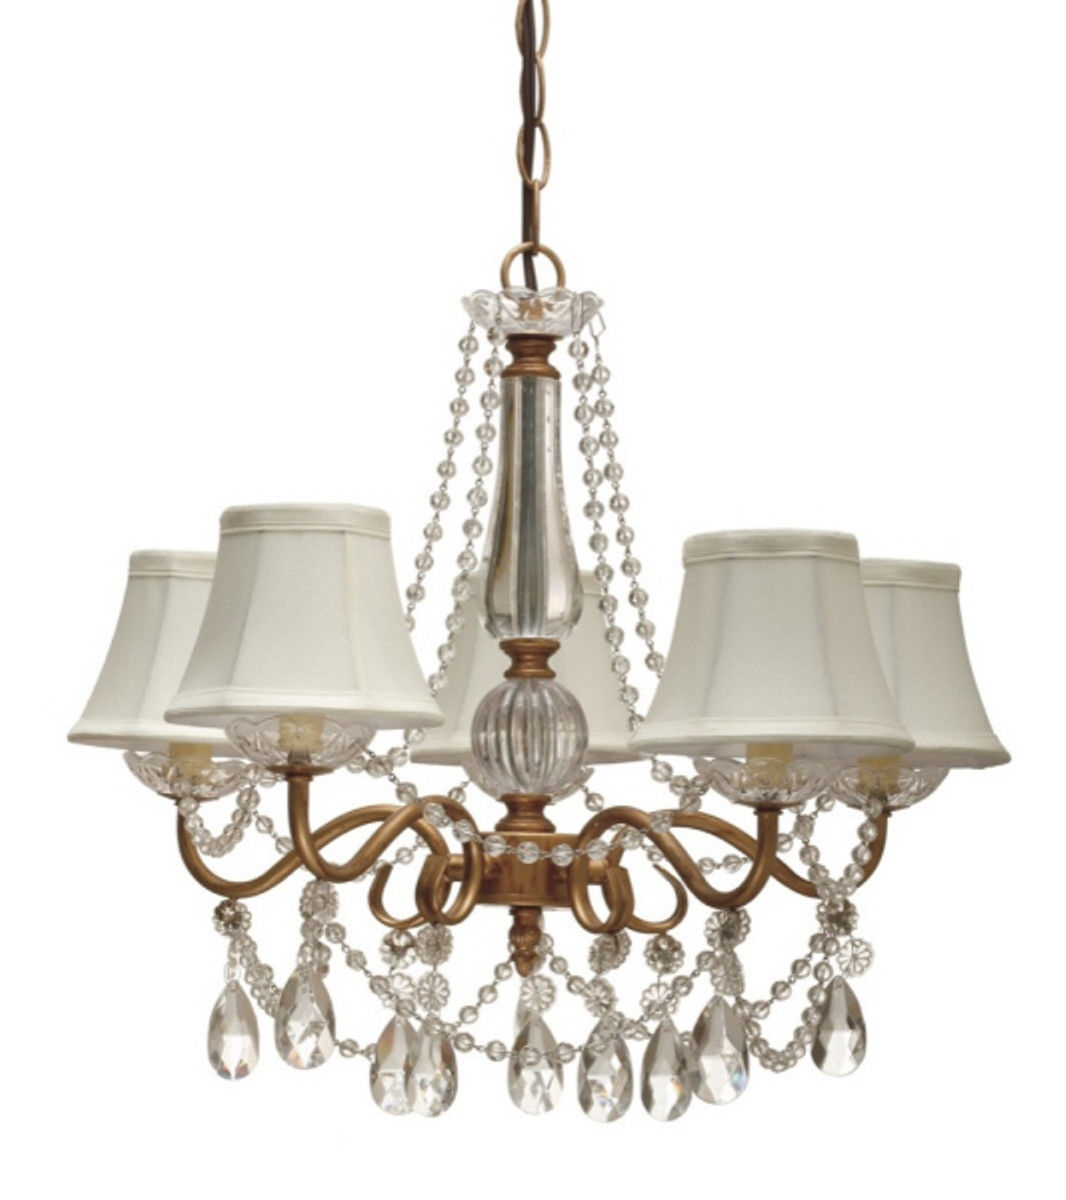 Gold Arm Crystals Chandelier 5 Silk Shades Lamp Shade Pro Pertaining To Lampshade Chandeliers (Image 11 of 25)